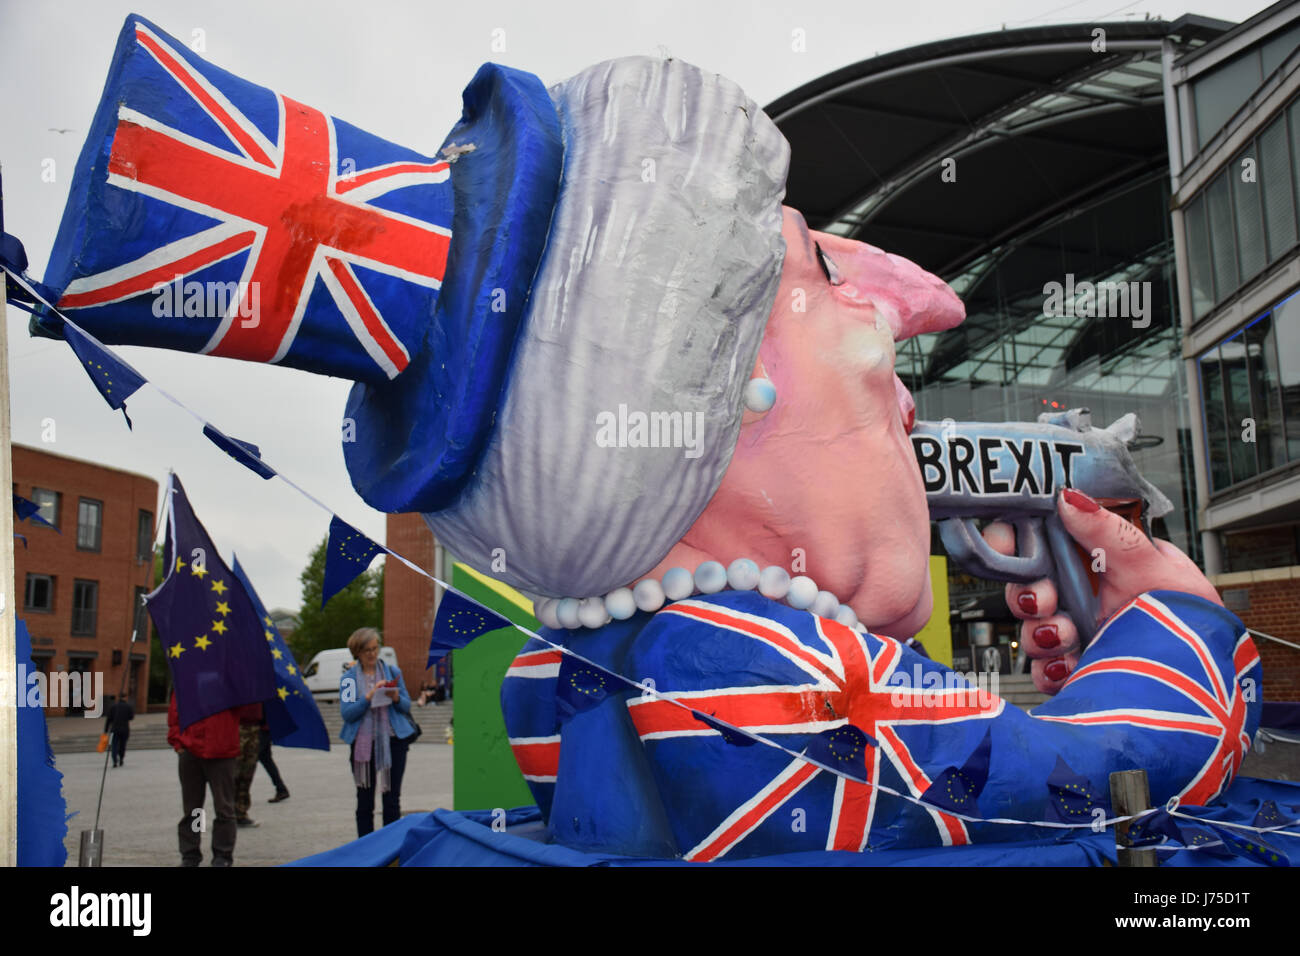 Anti-Brexit protest outside The Forum in Norwich with Theresa May float. 18 May 2017 UK - Stock Image